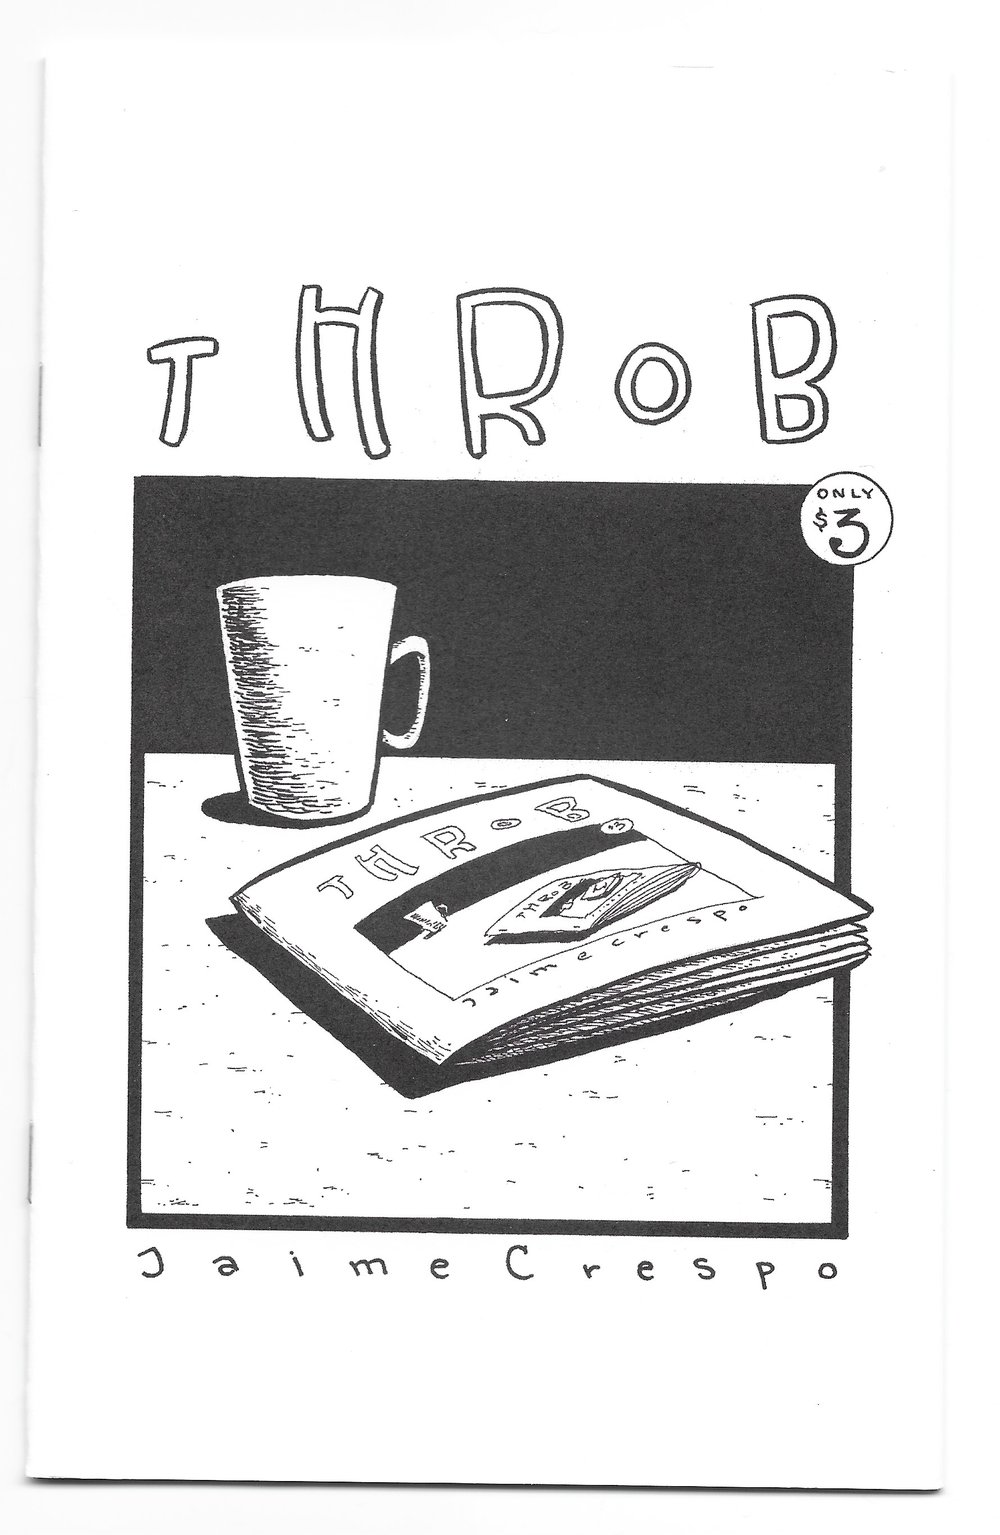 Throb - The (surprisingly) popular wordless book that was my tribute to the great New Yorker Magazine illustrator, Istvan Banyai and his wordless works of art, Zoom and Re-Zoom. The entire story behind this project is in the inside, front cover. Digest size, card stock cover, 24 pages. $4.00 ppd.